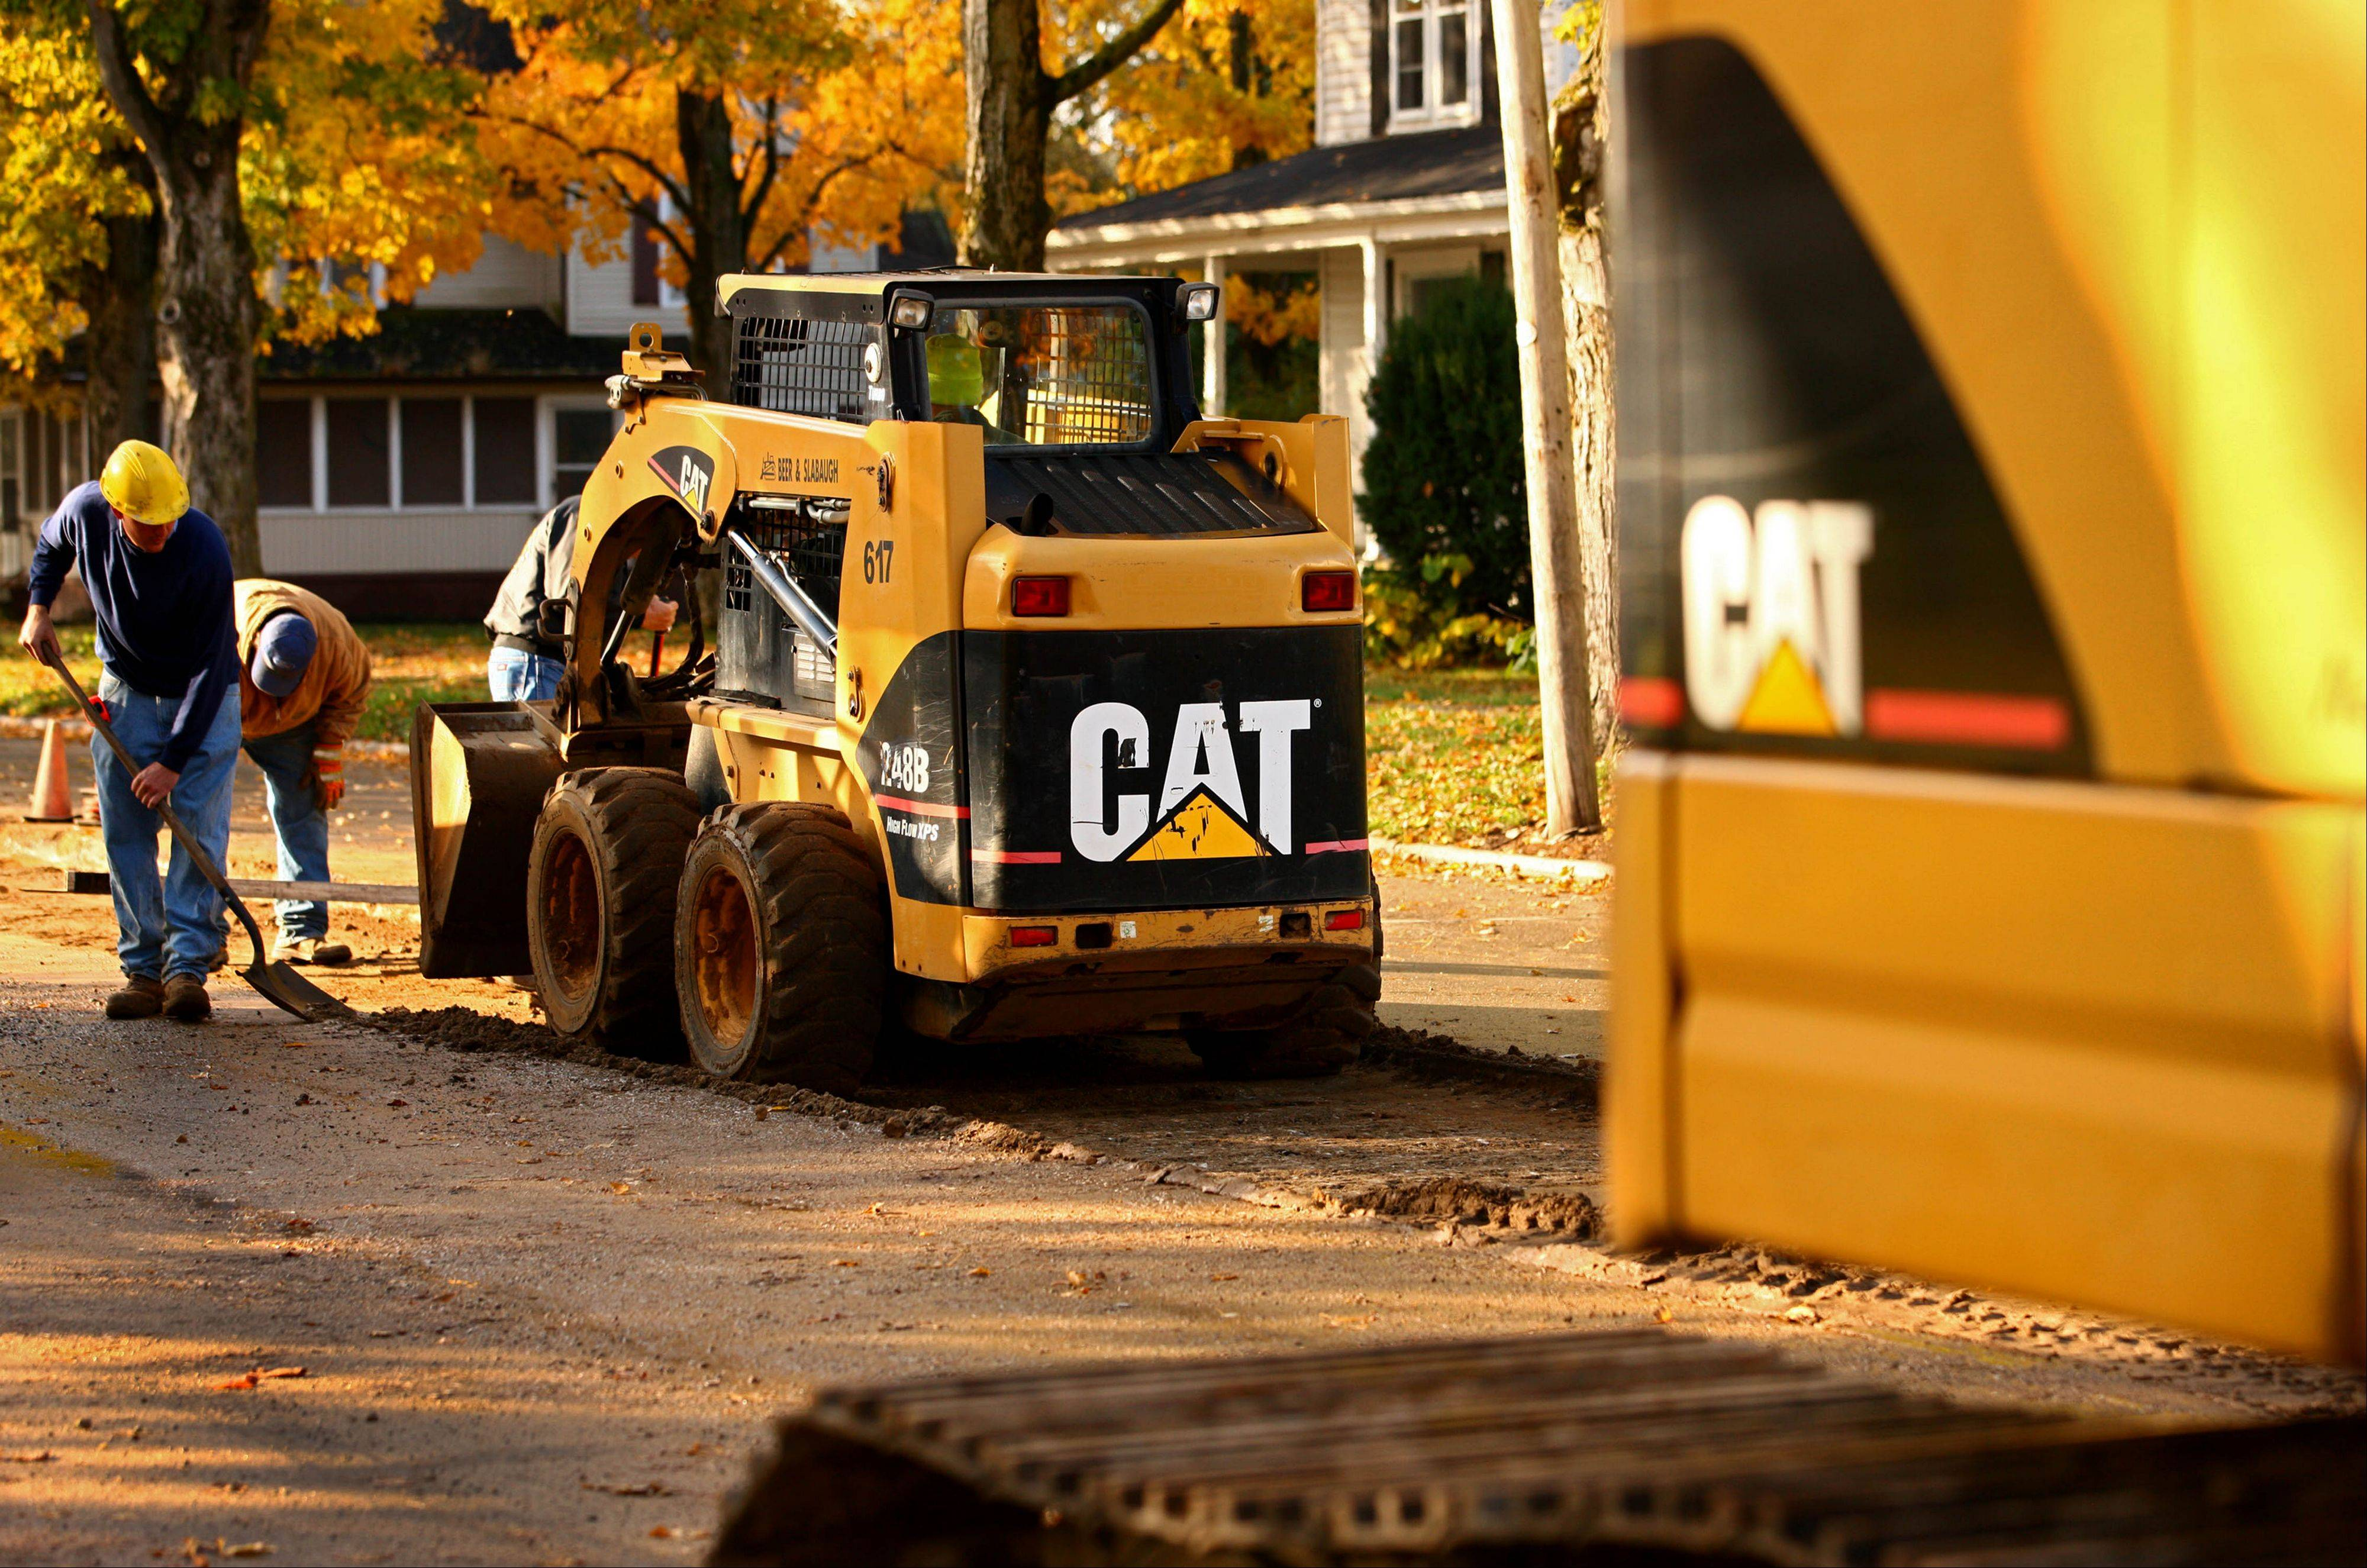 Caterpillar's fourth-quarter net income rose compared with results weighed down by a large impairment charge a year ago. Its performance topped Wall Street's view.